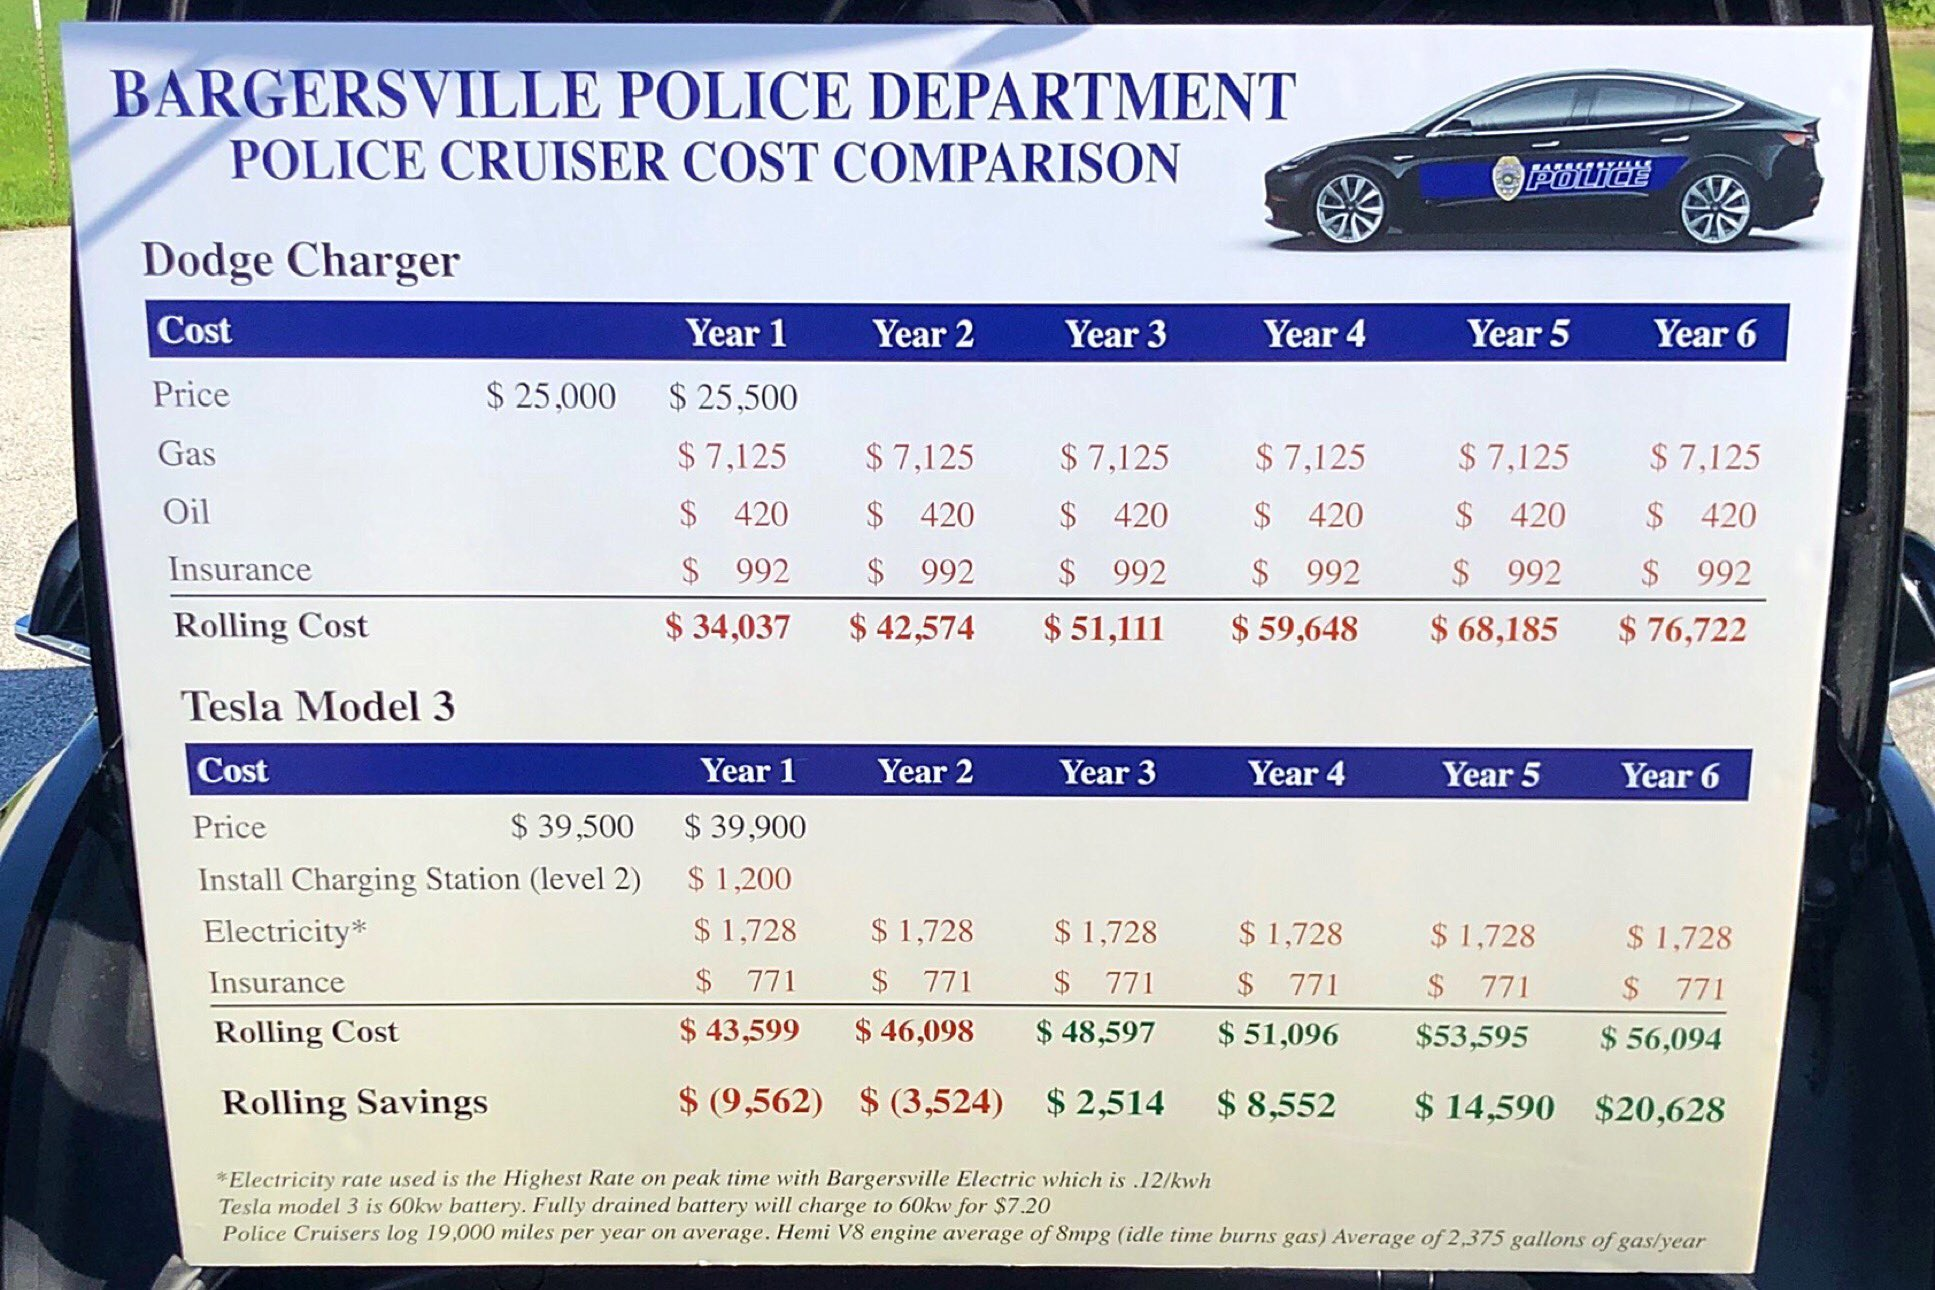 Police cruiser cost comparison between a Tesla Model 3 and Dodge Charger by Bargersville Police Department.